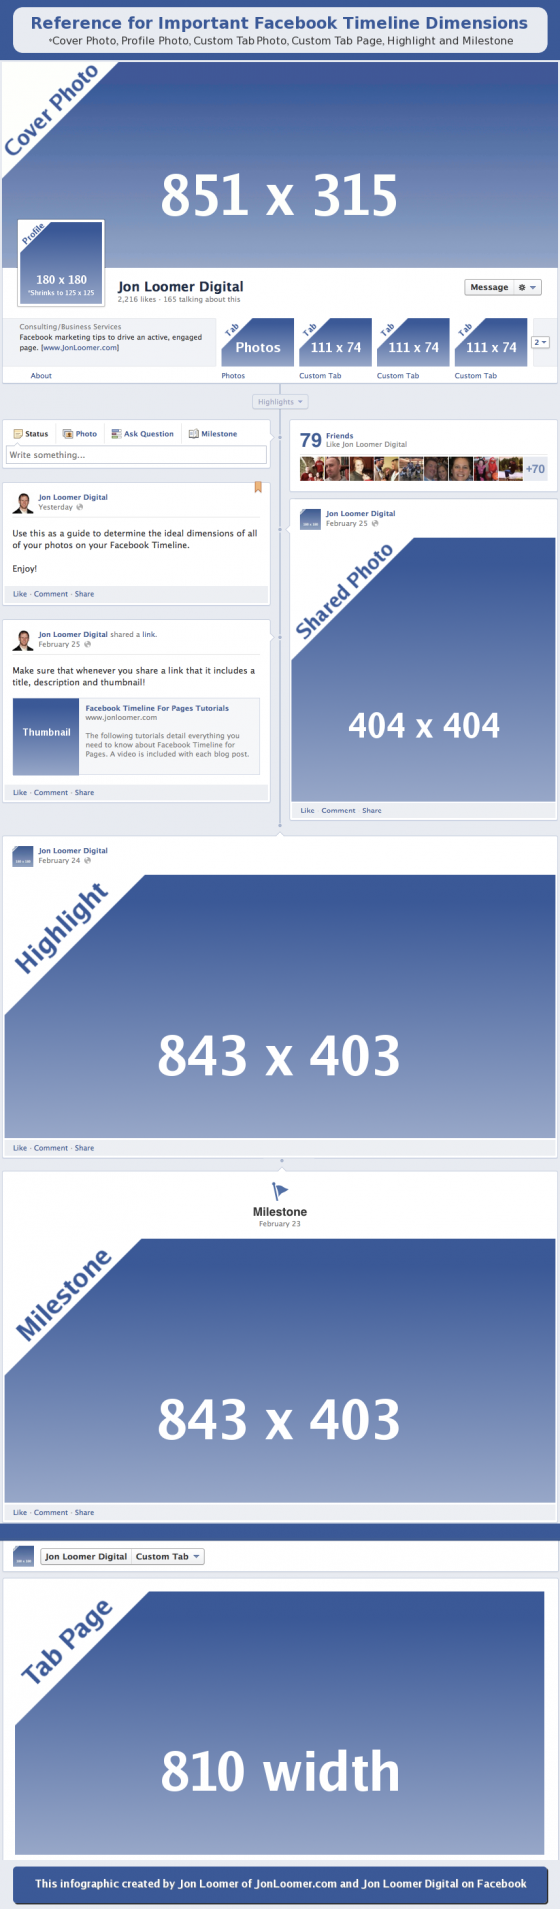 FacebookTimelineImageDimensions21 560x1909 Reference of Dimensions for Facebook Timeline For Pages [Infographic]